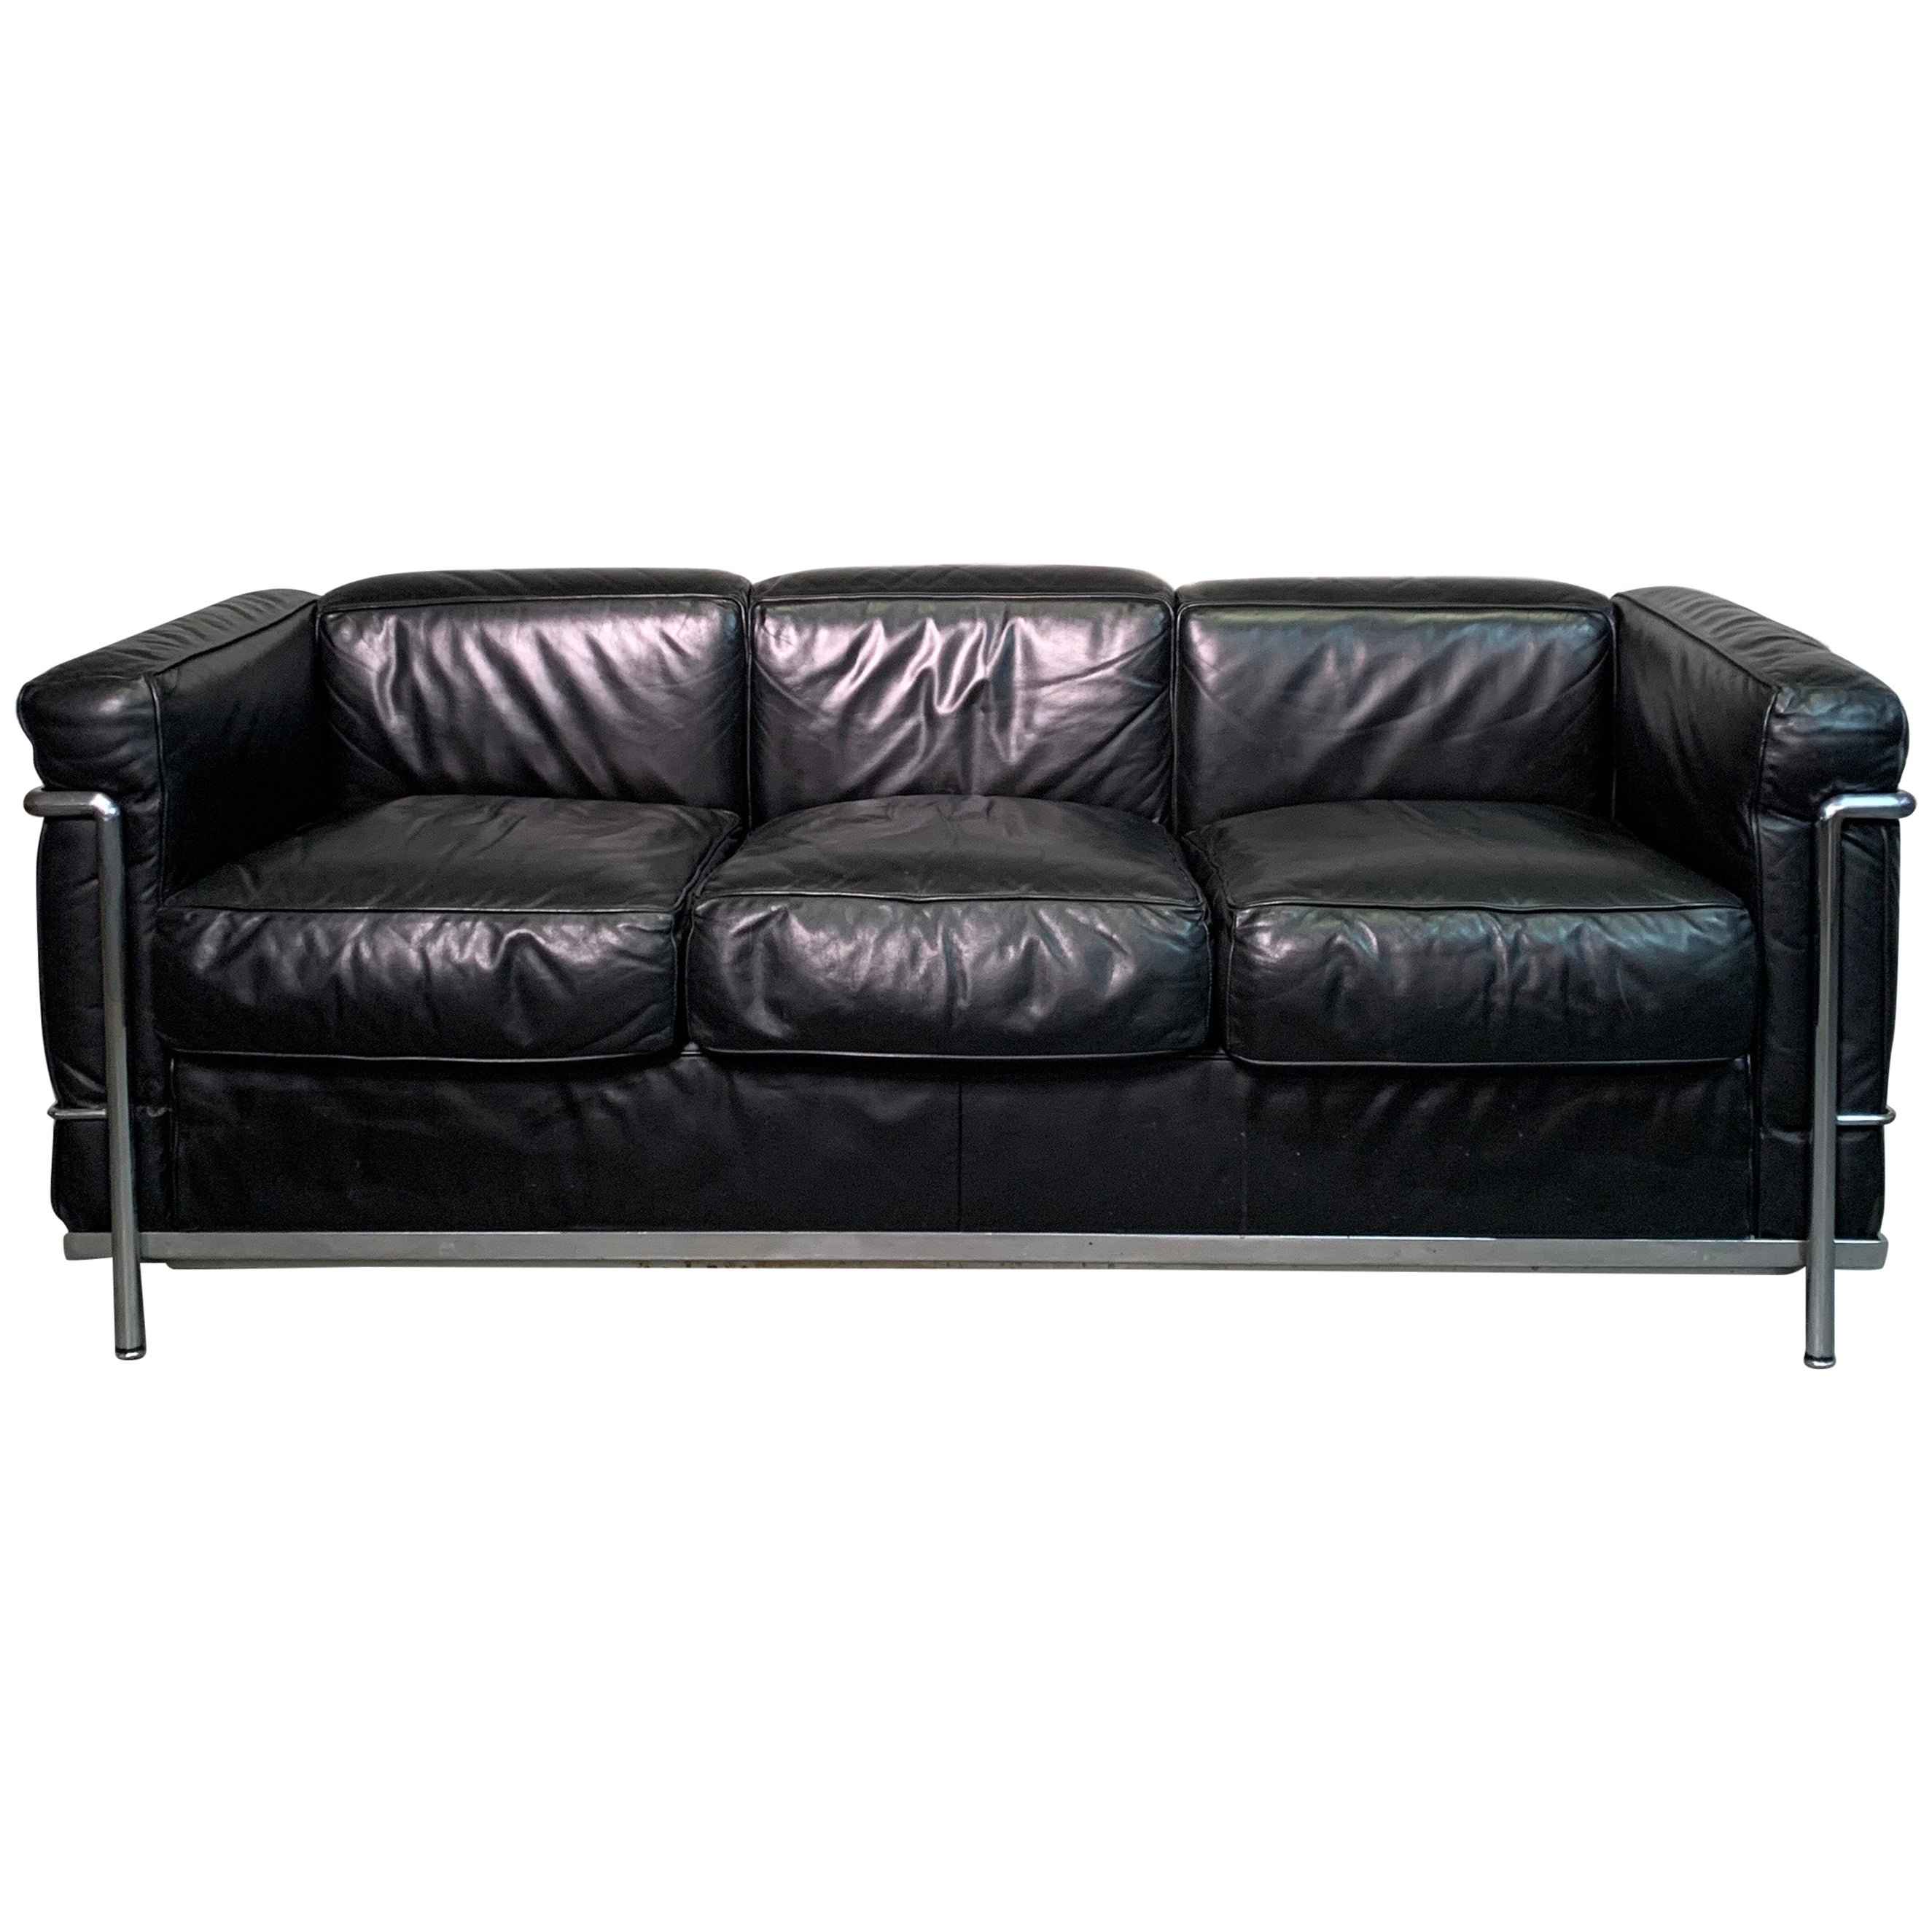 Leather and Chrome Three Seat LC2 Sofa by Le Corbusier for Cassina